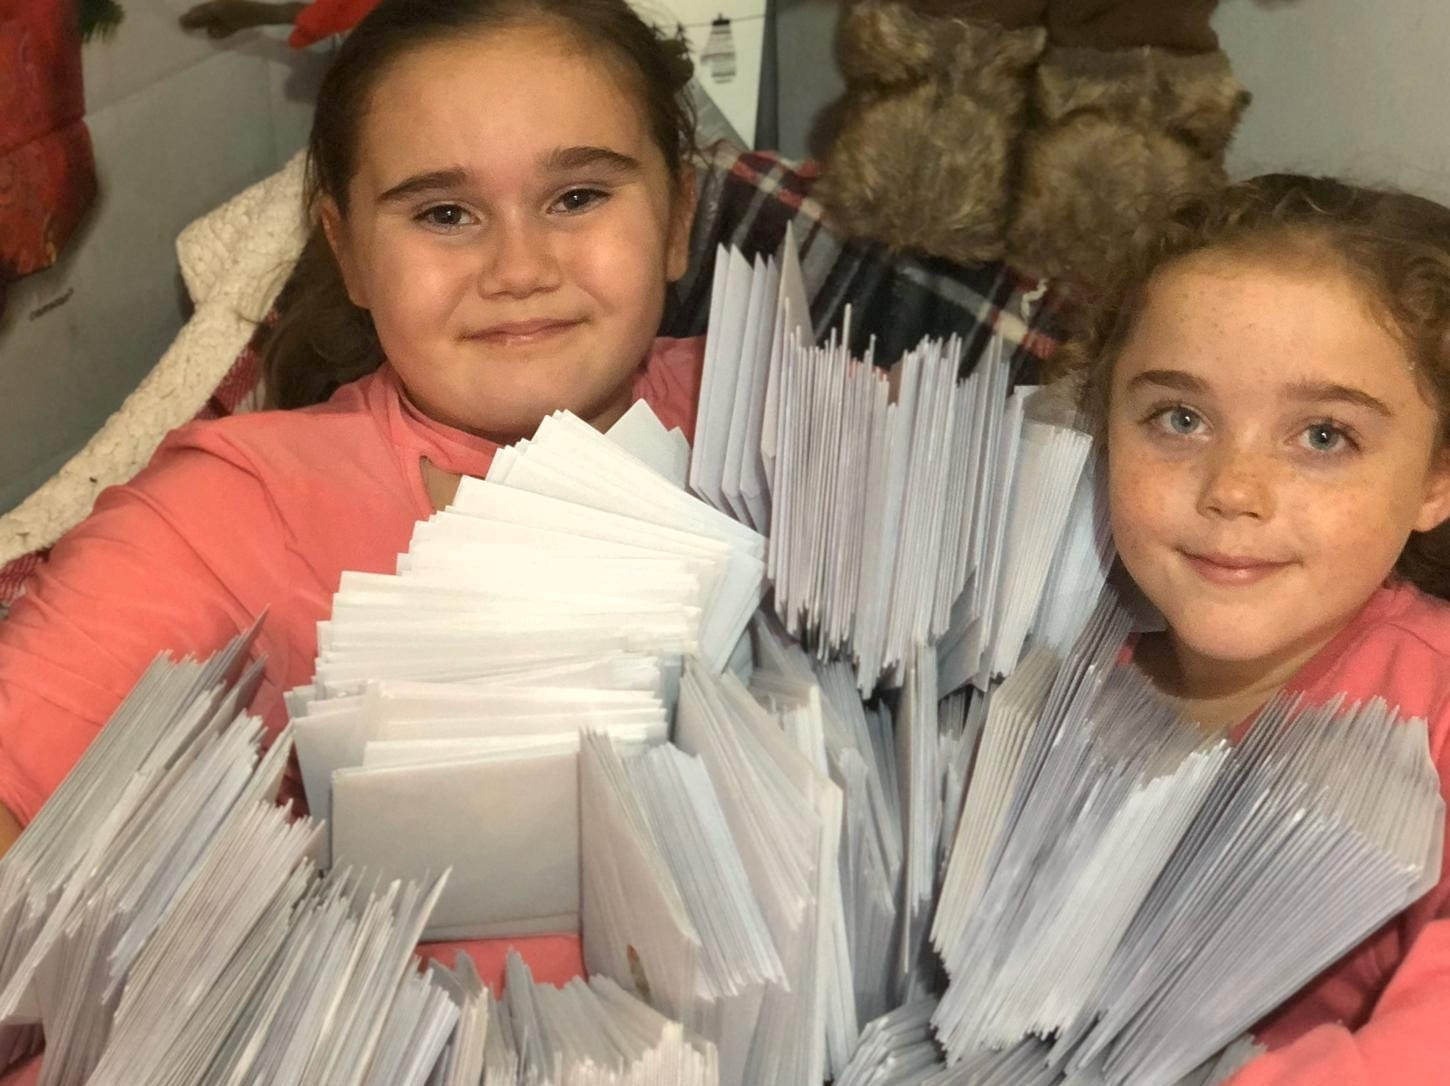 'It's All About Making People Smile' – Schoolgirl Brought Festive Joy To Her Village By Hand-Delivering More Than 1000 Christmas Cards – Despite Only Having One Leg